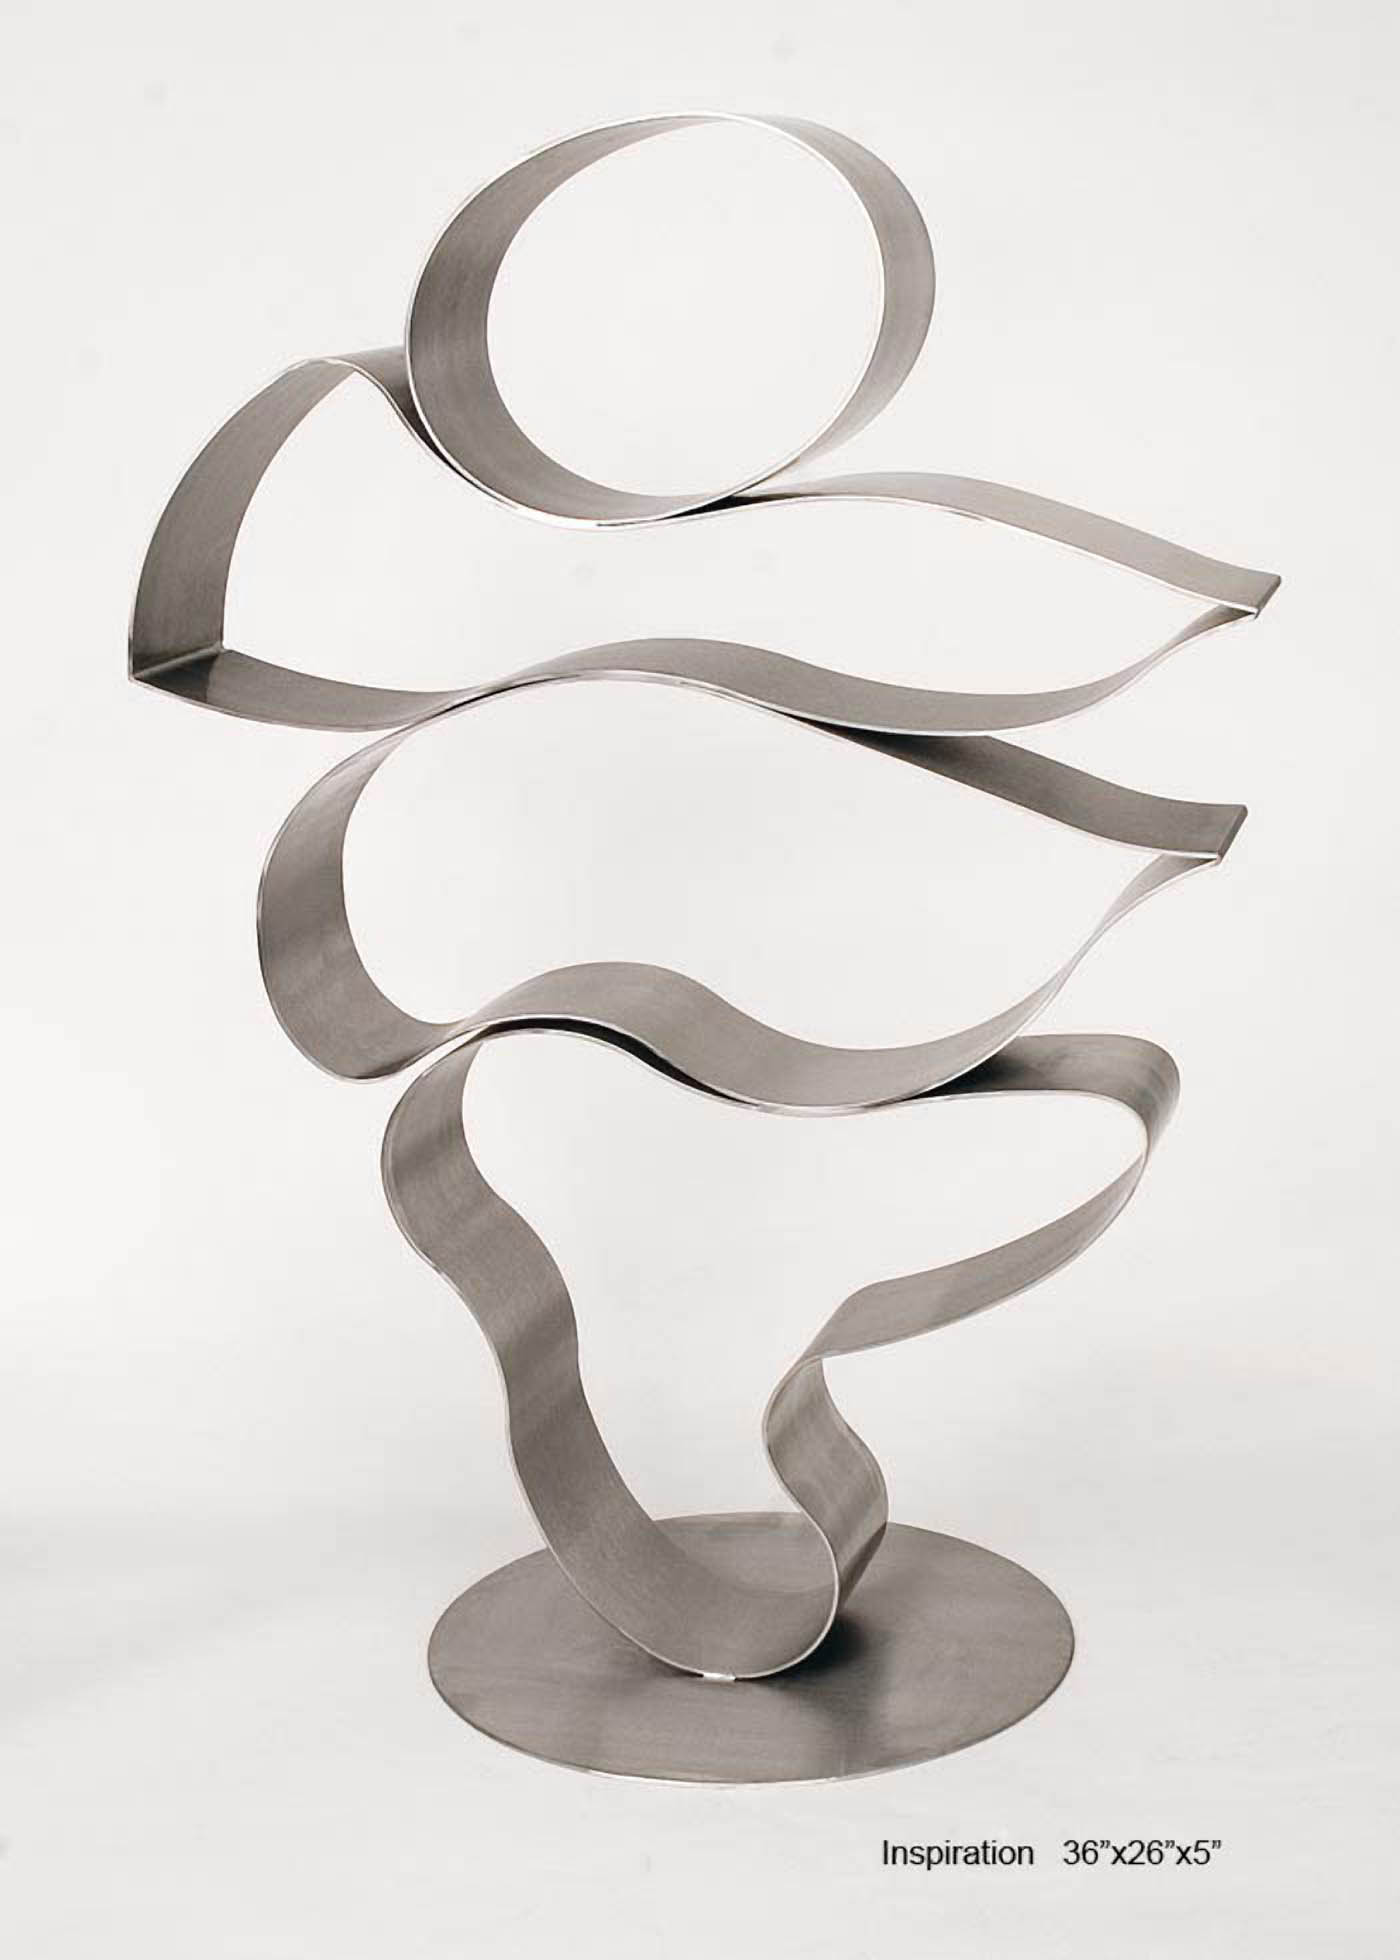 Inspiration    2005, stainless steel, 36x26x5 in